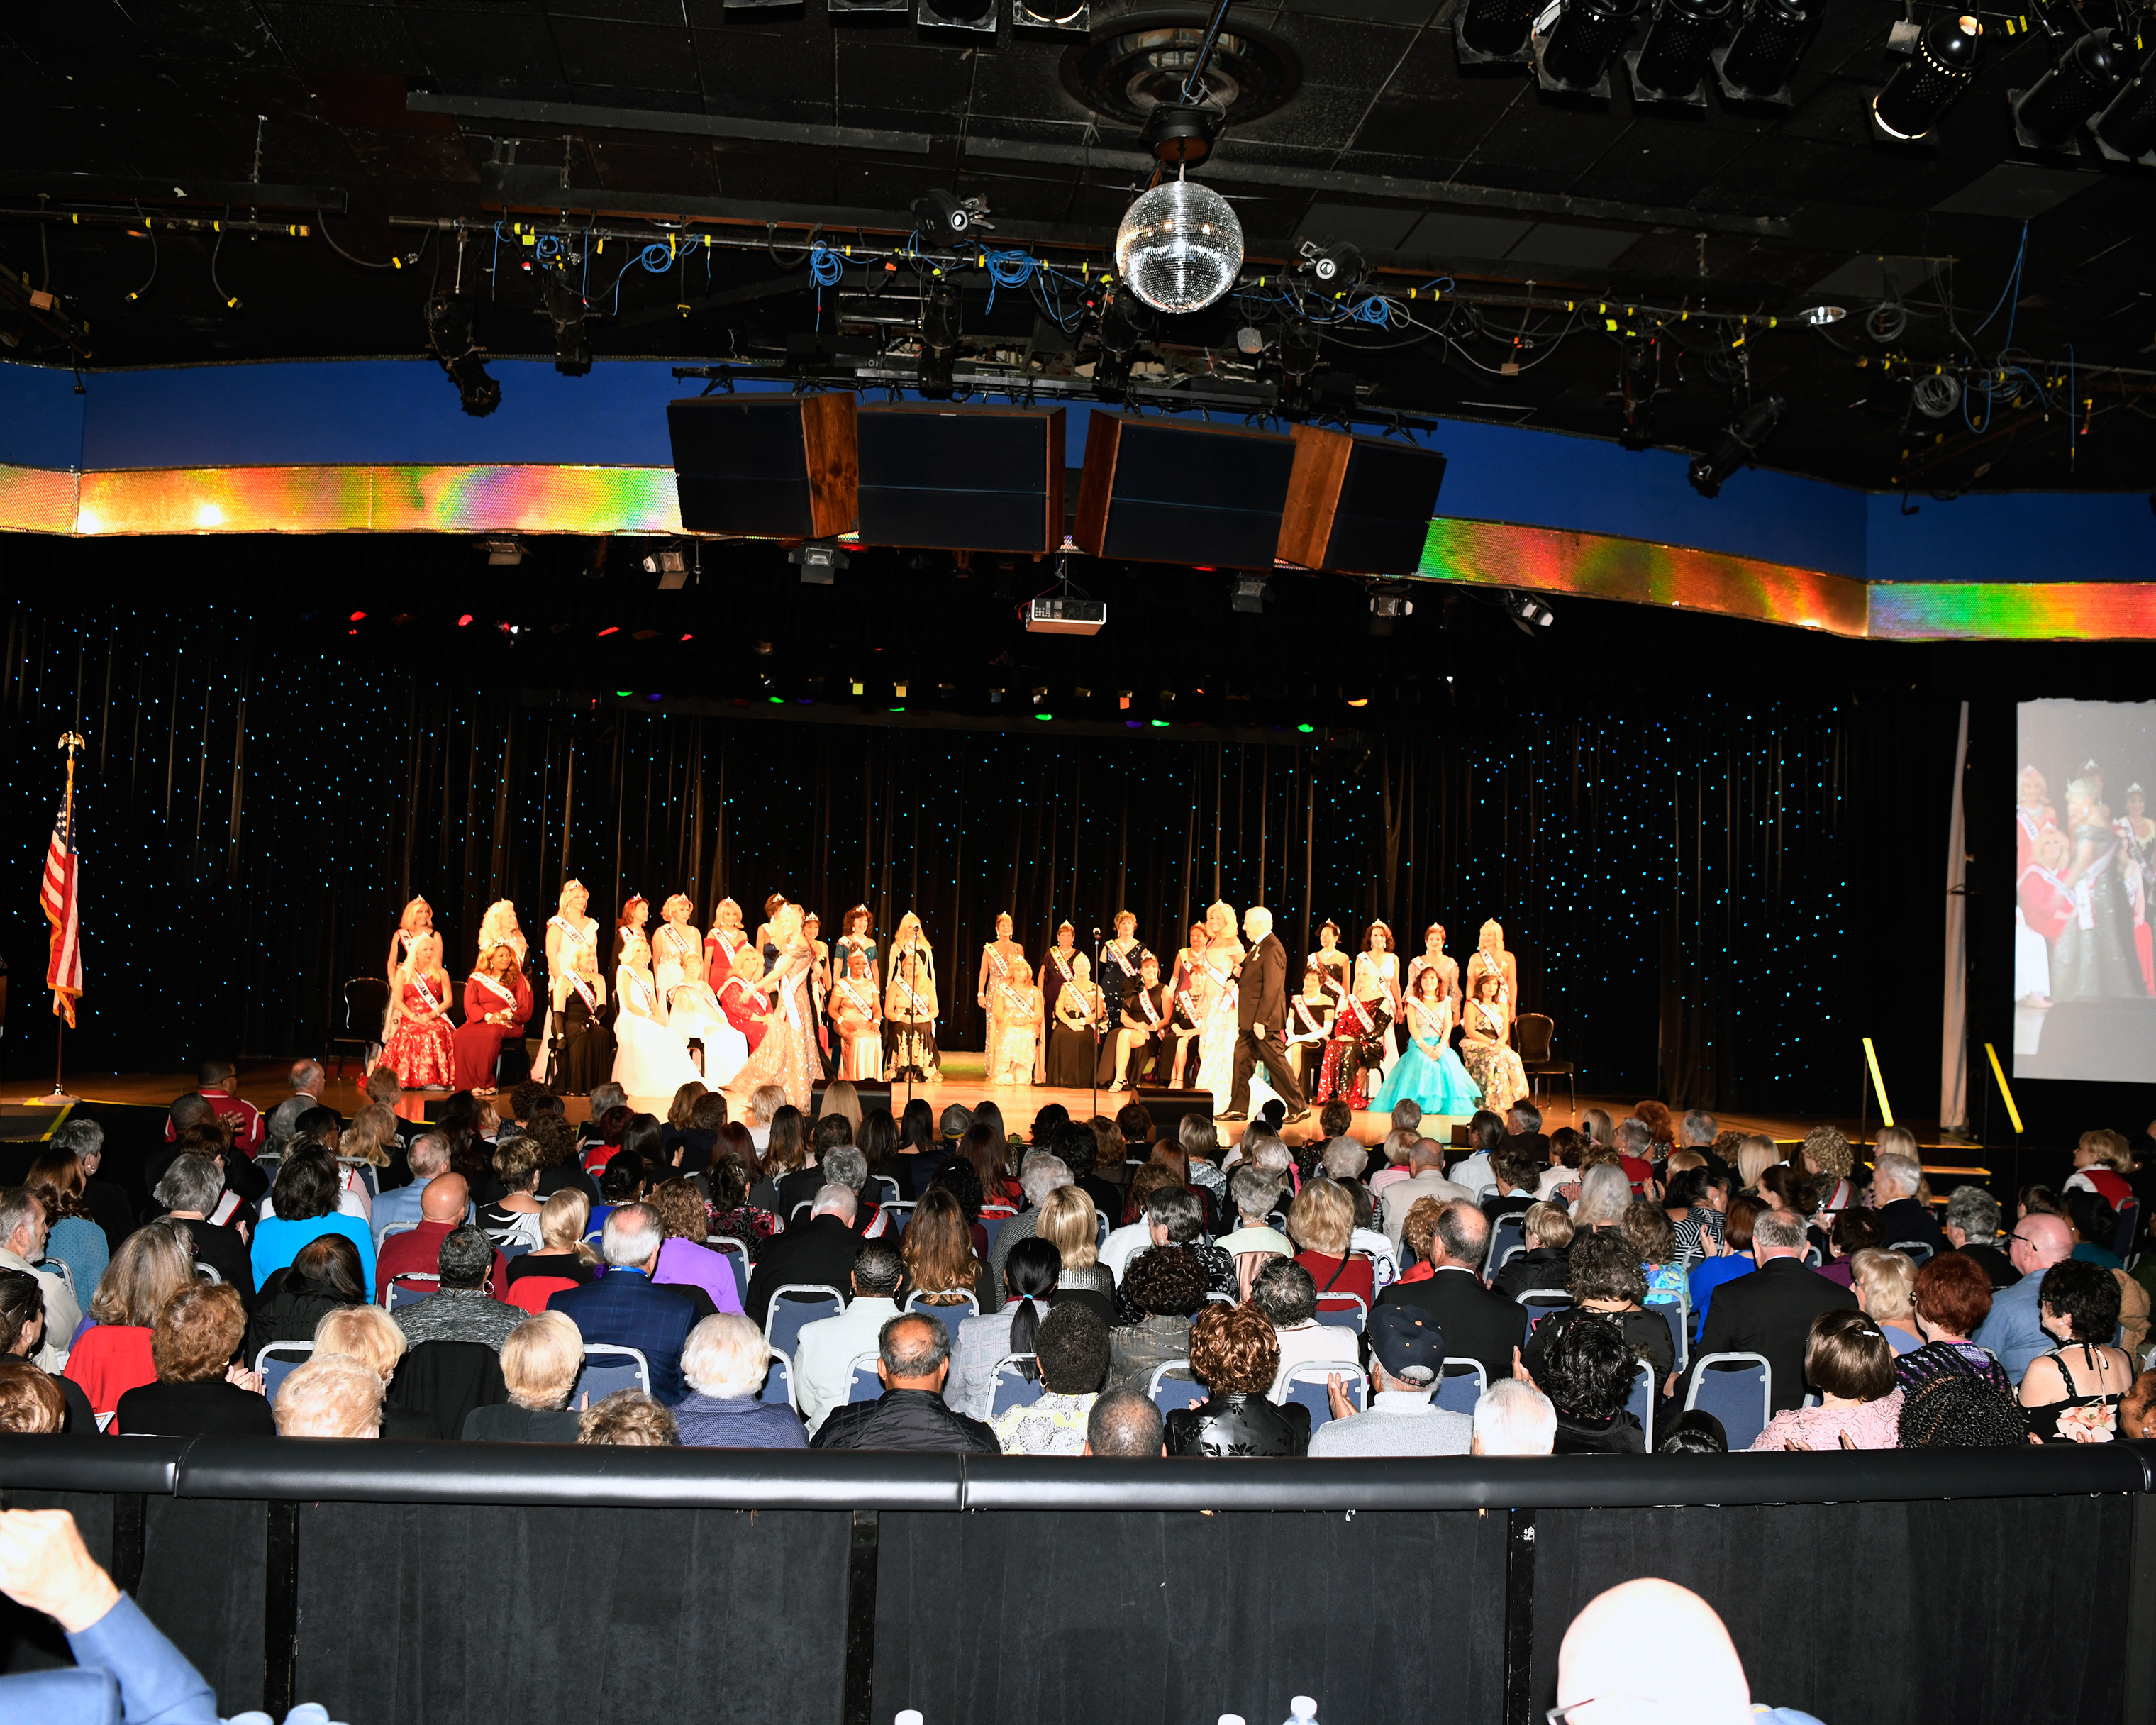 All the of the contestants line-up before the top 10 finalists are announced at the Ms. Senior America Pageant in Atlantic City, N.J. on Oct. 18, 2018.